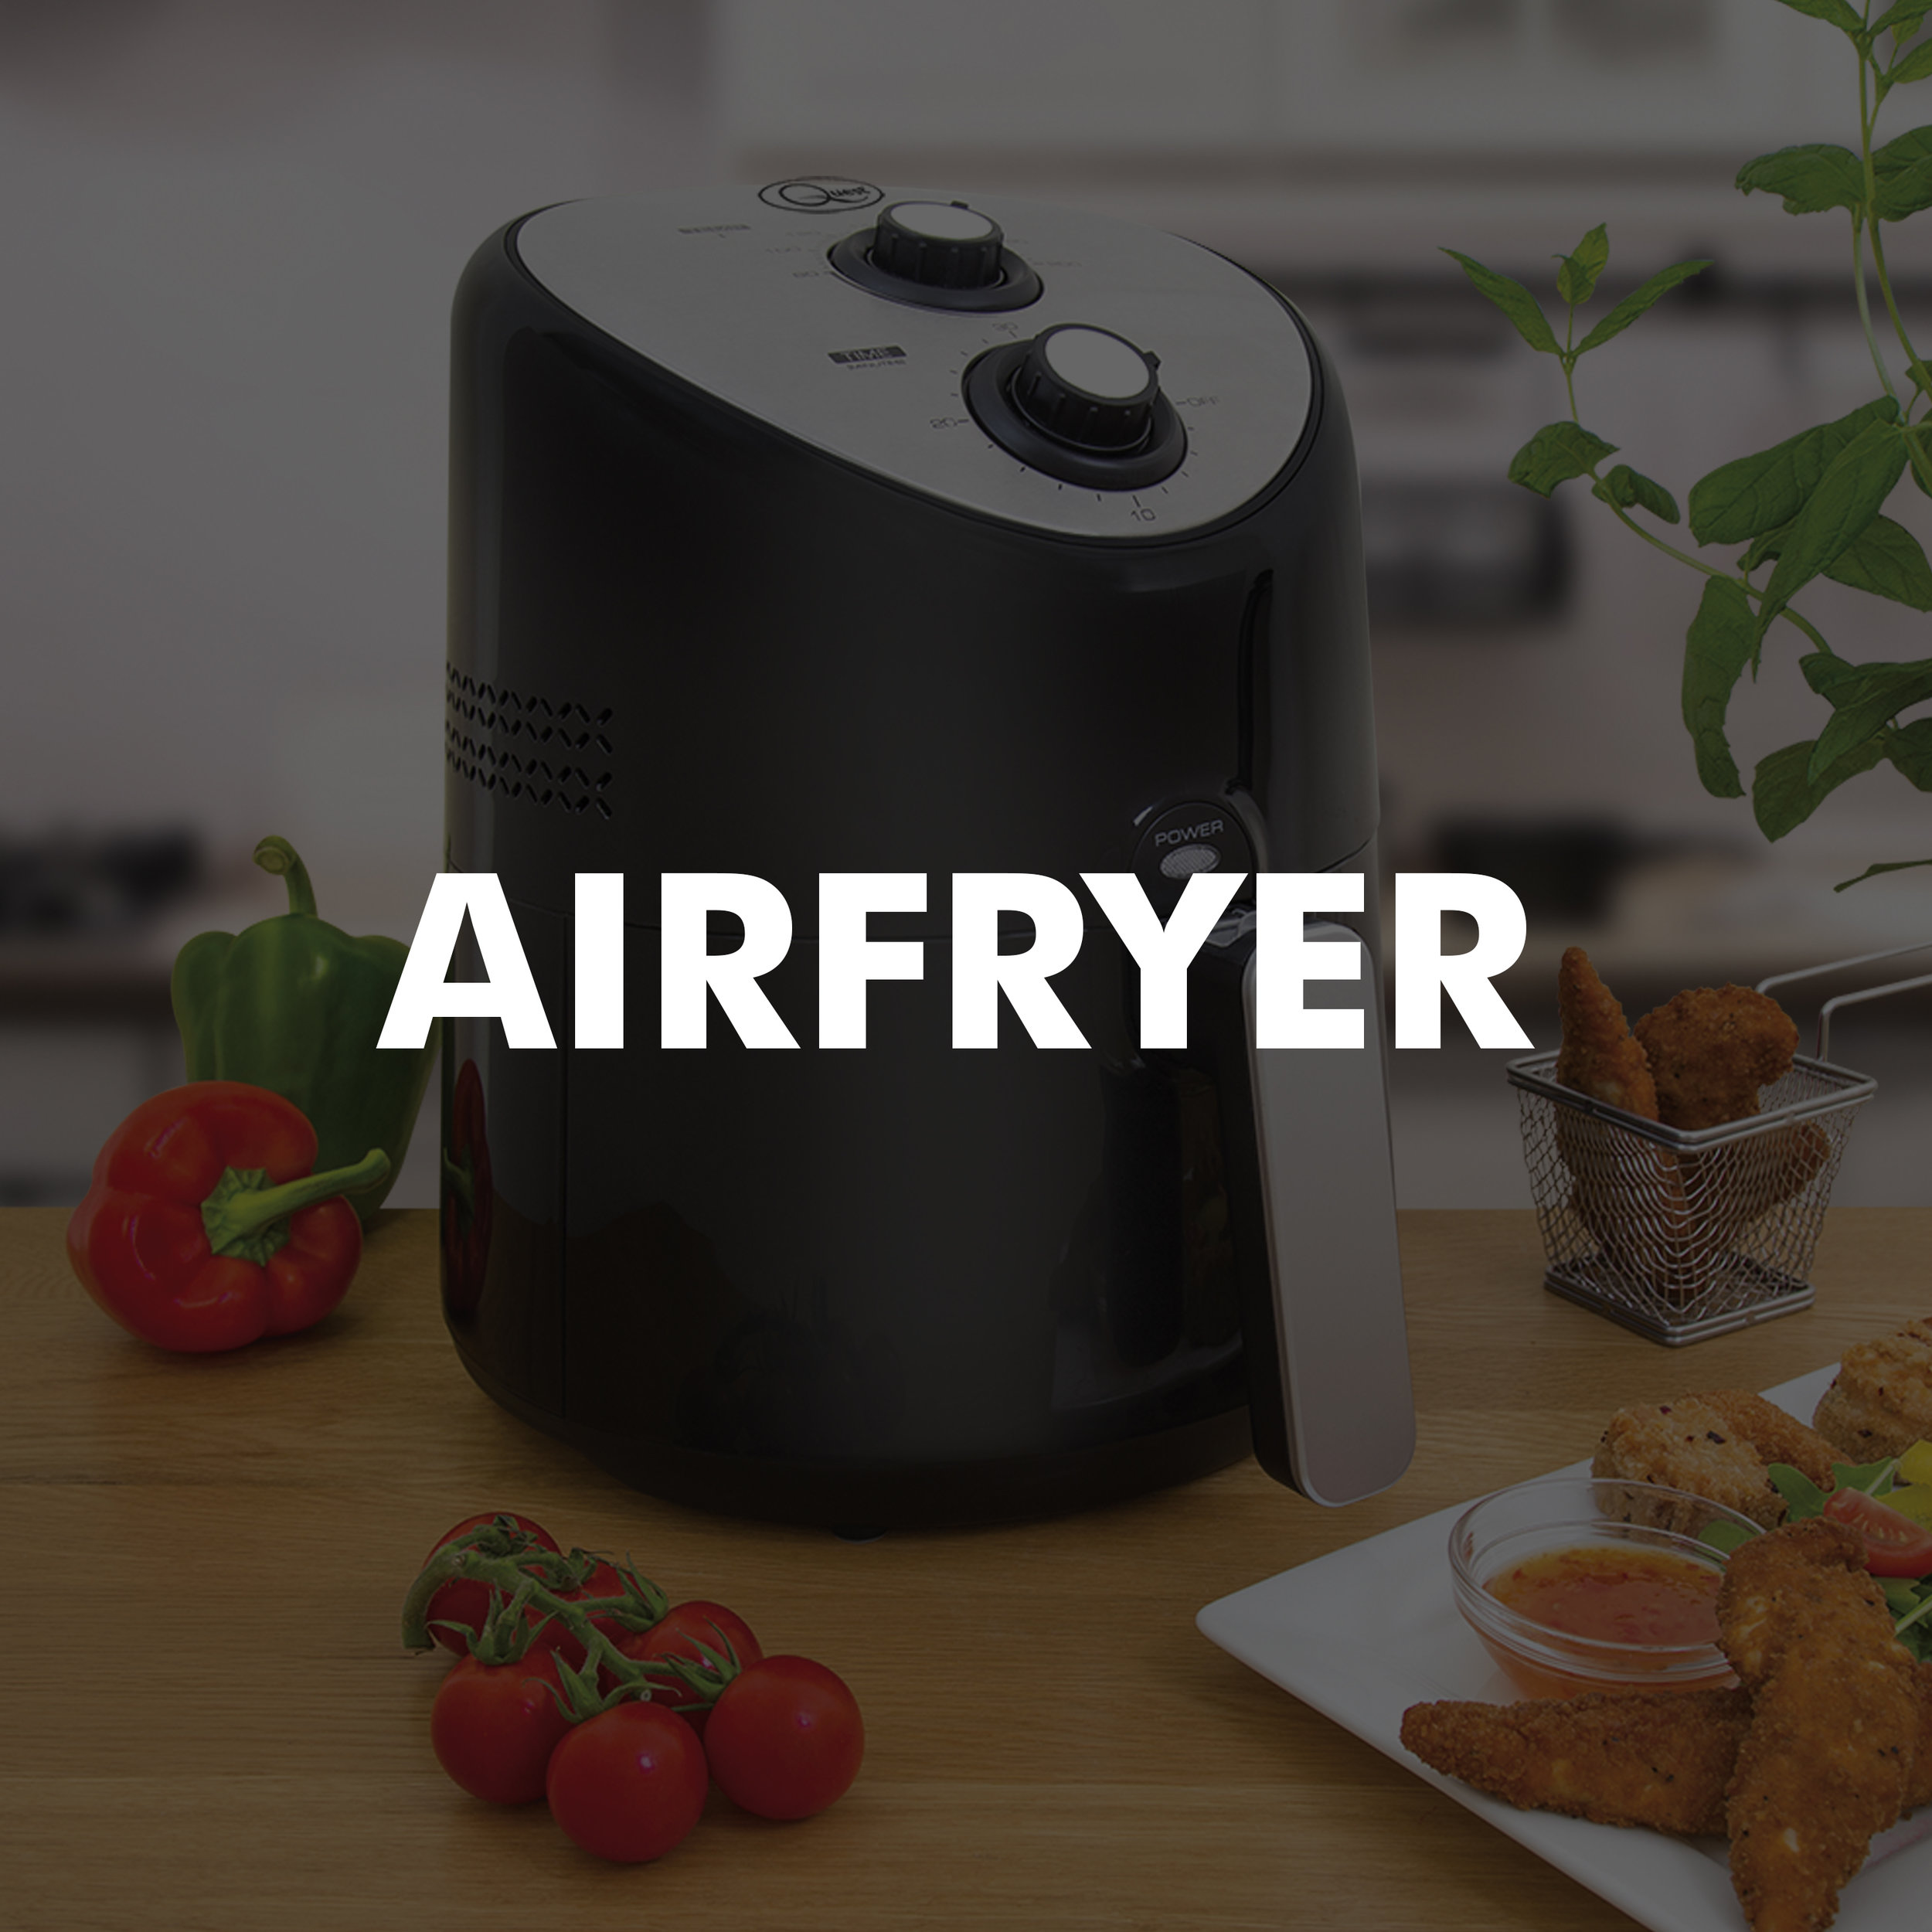 Airfryer category